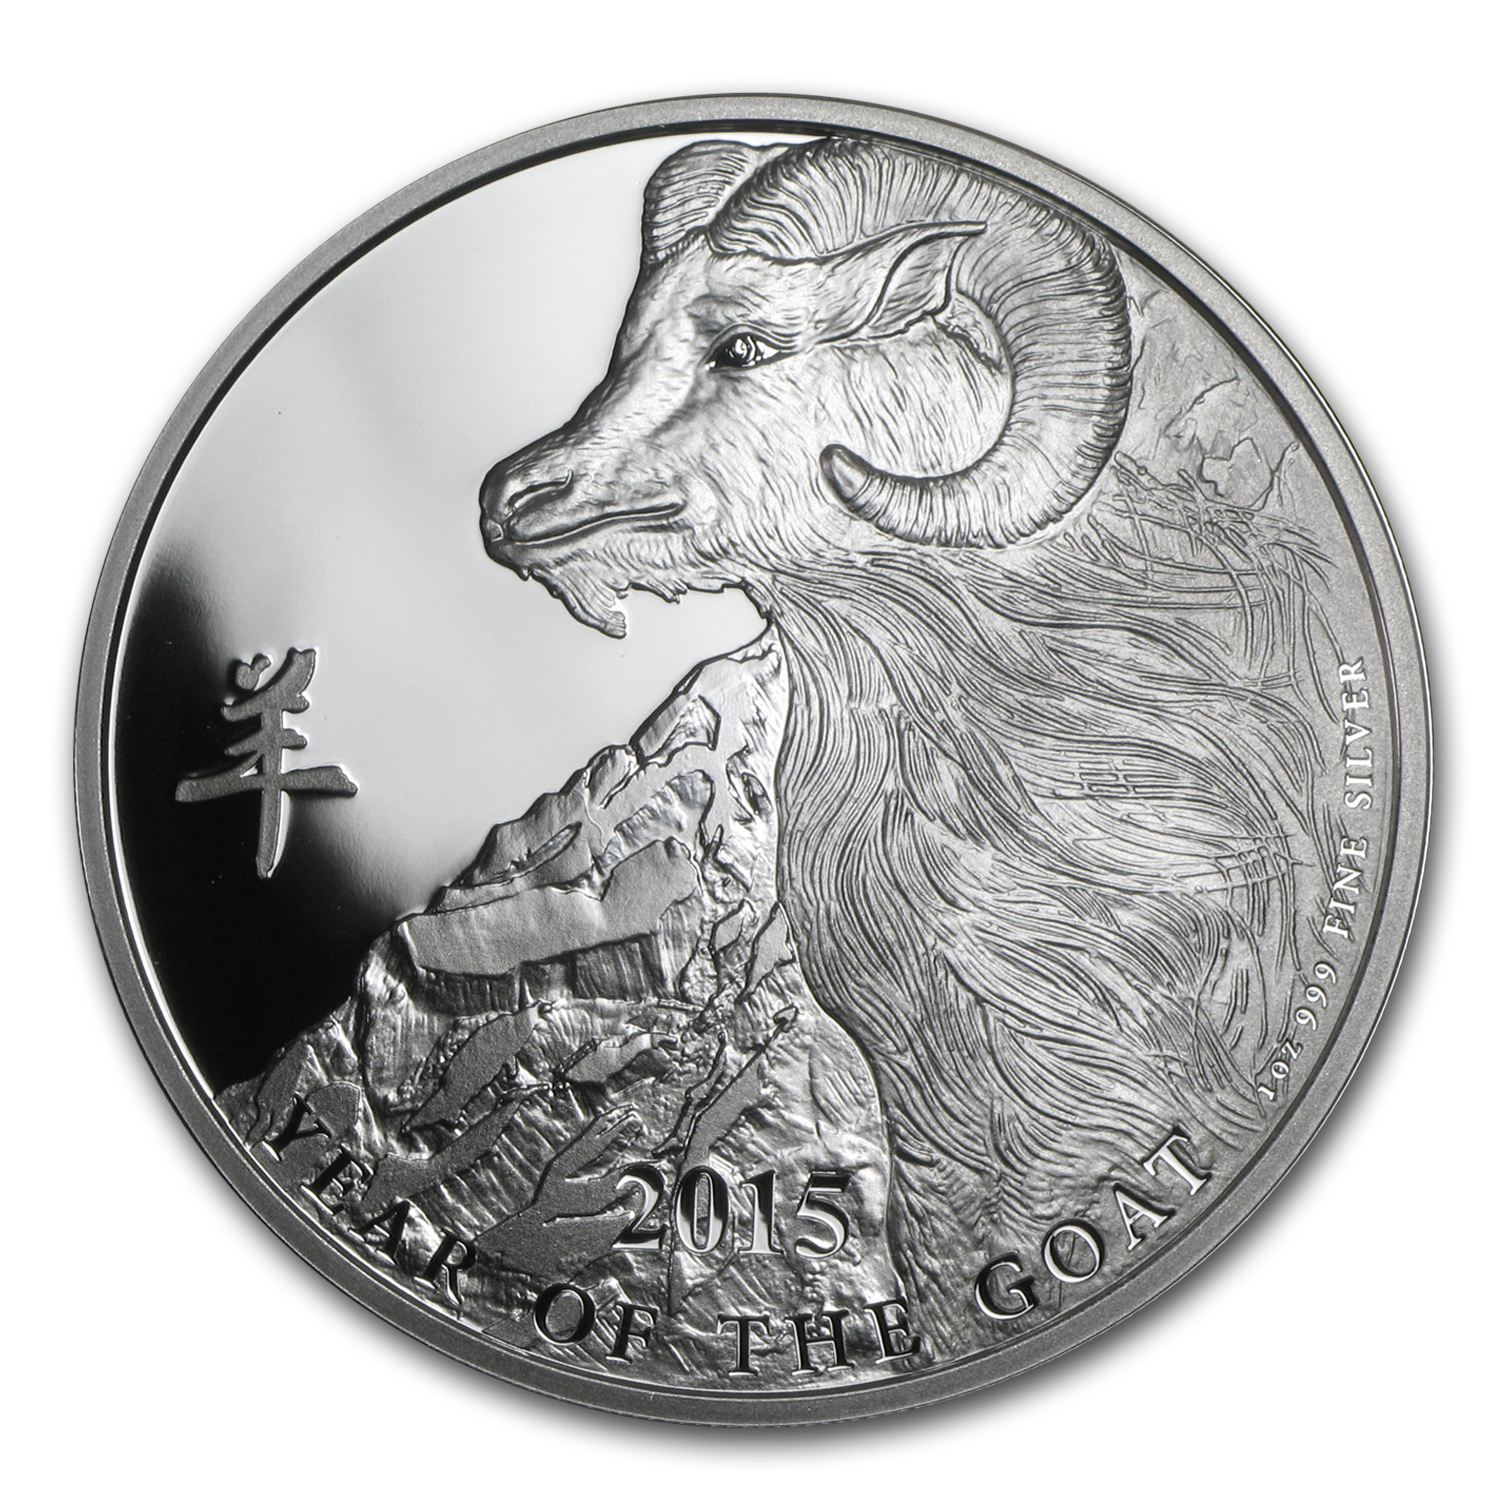 2015 Niue 1 oz Silver $2 Lunar Goat Proof (Engraved, w/Box & COA)